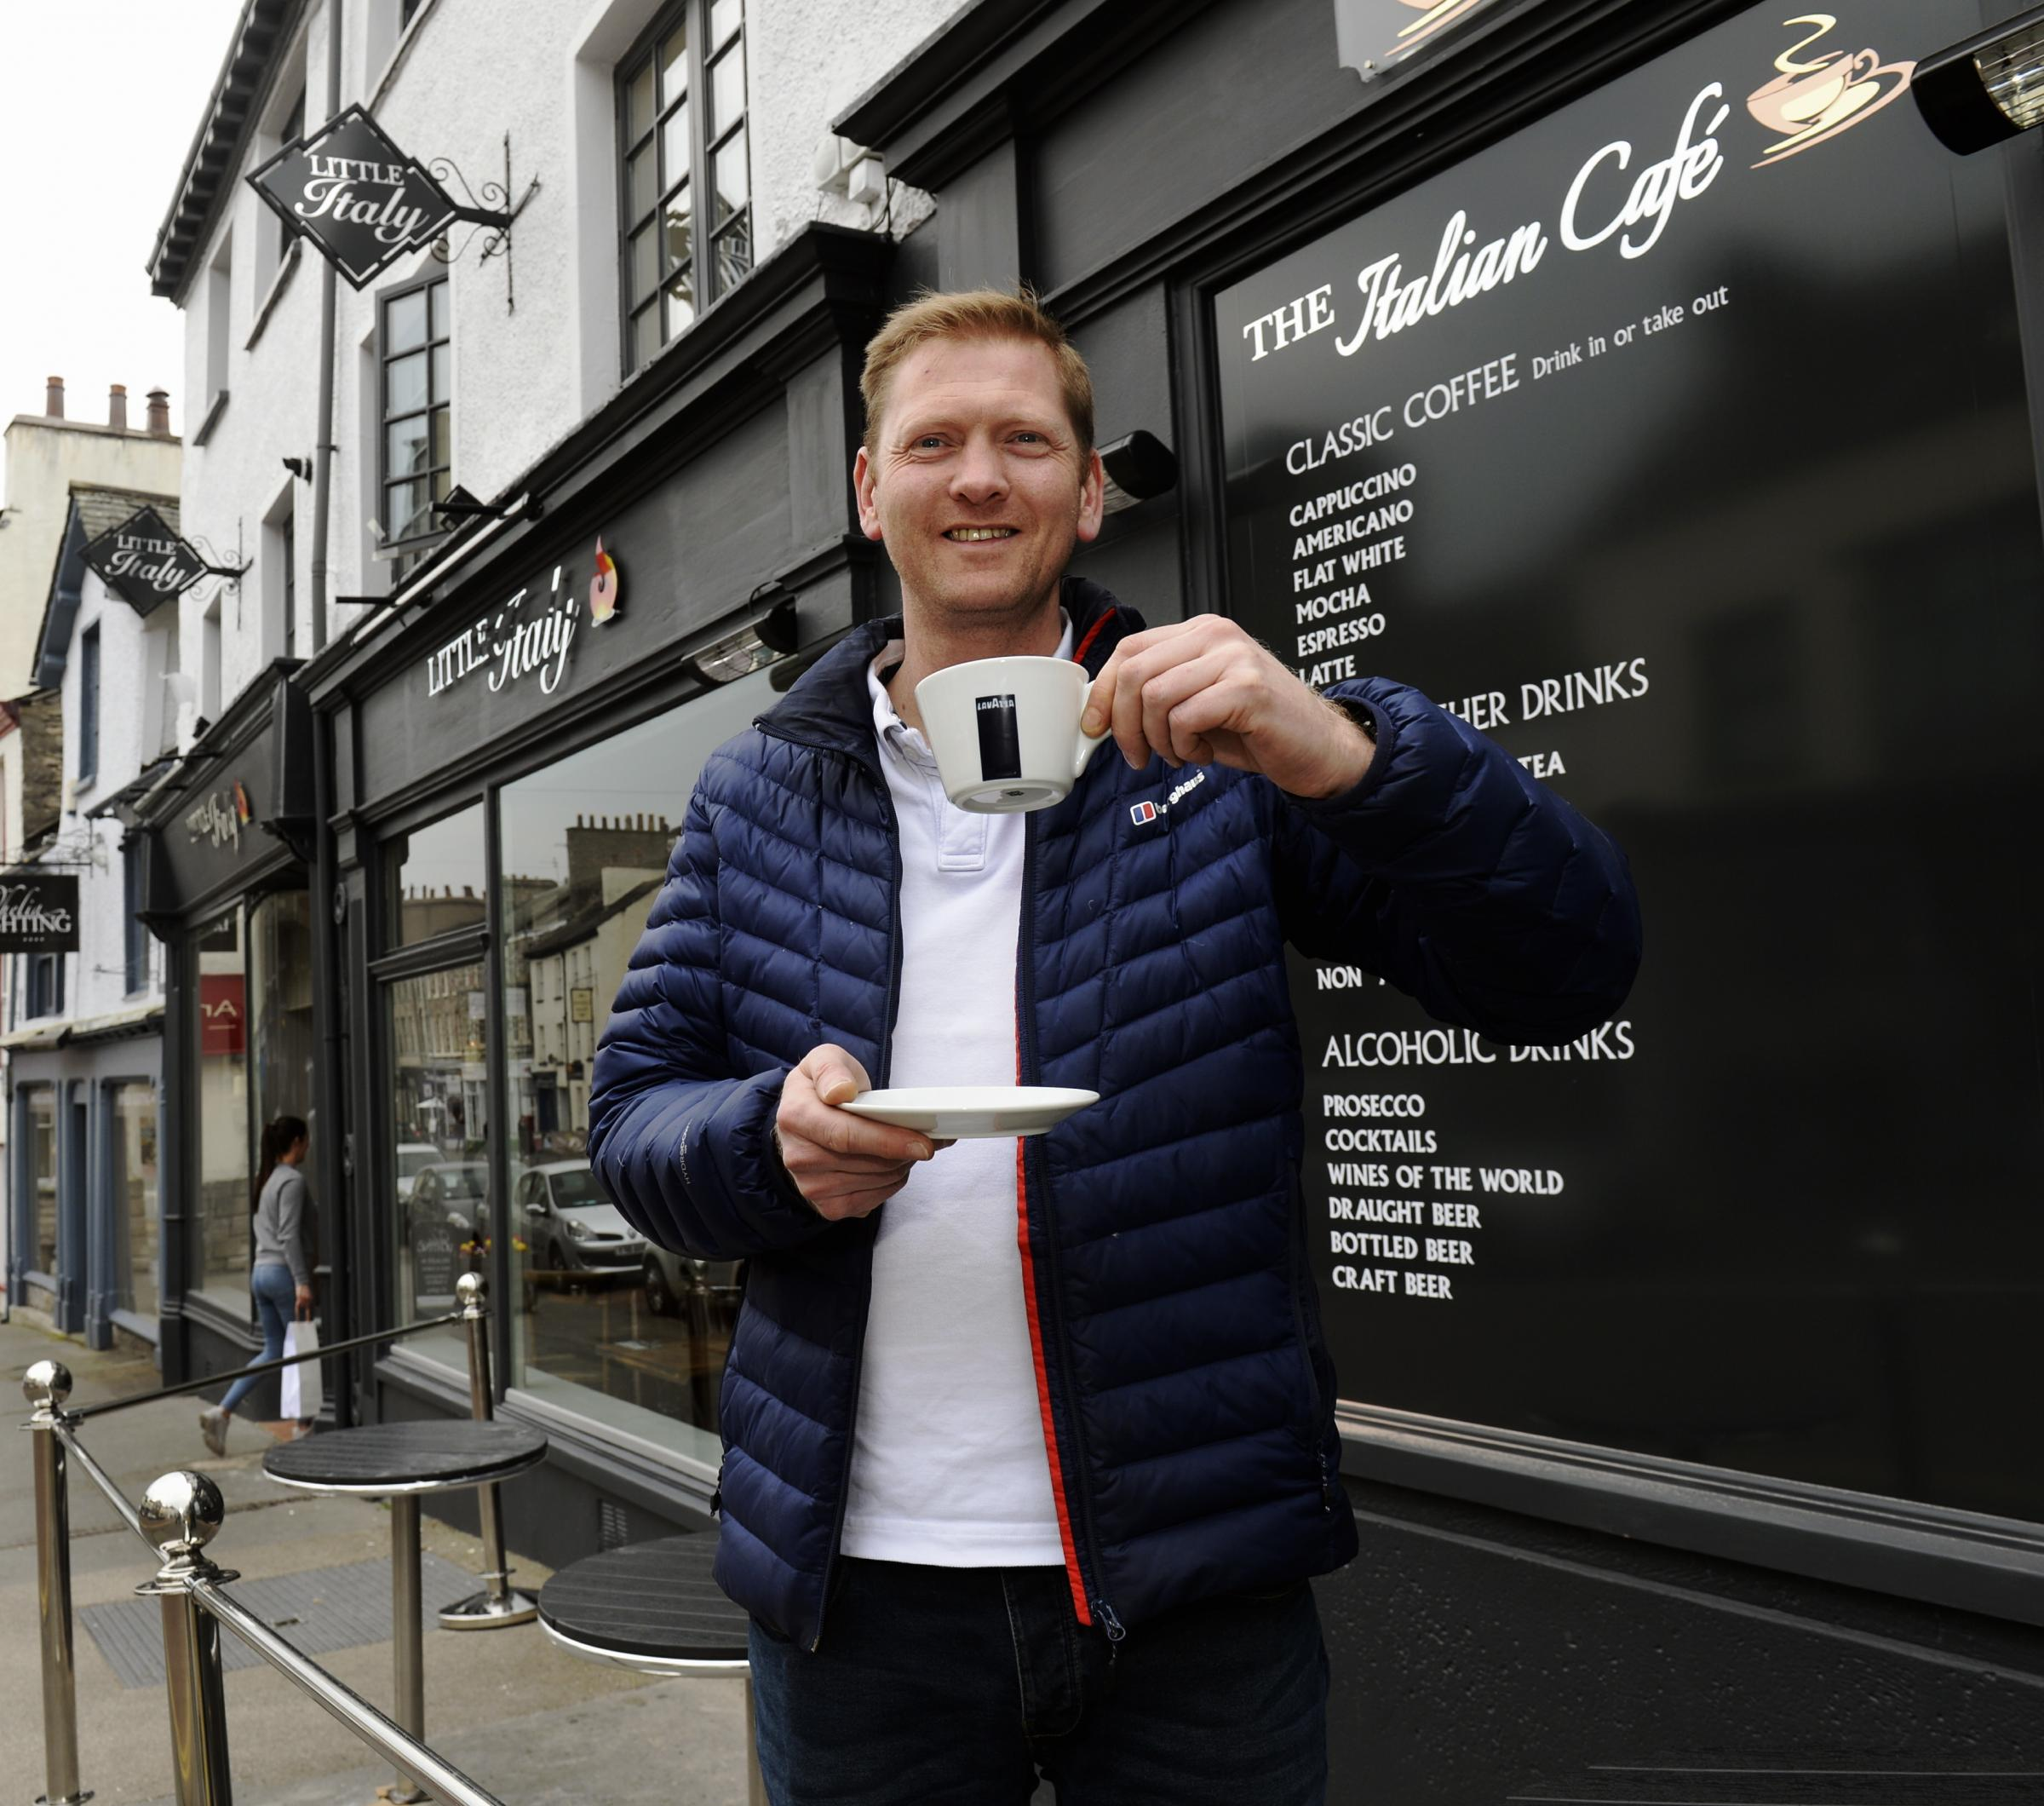 Little Italy manager James Heap outside his Italian-themed restaurant and its neighbouring bar, which opens today in Kendal.